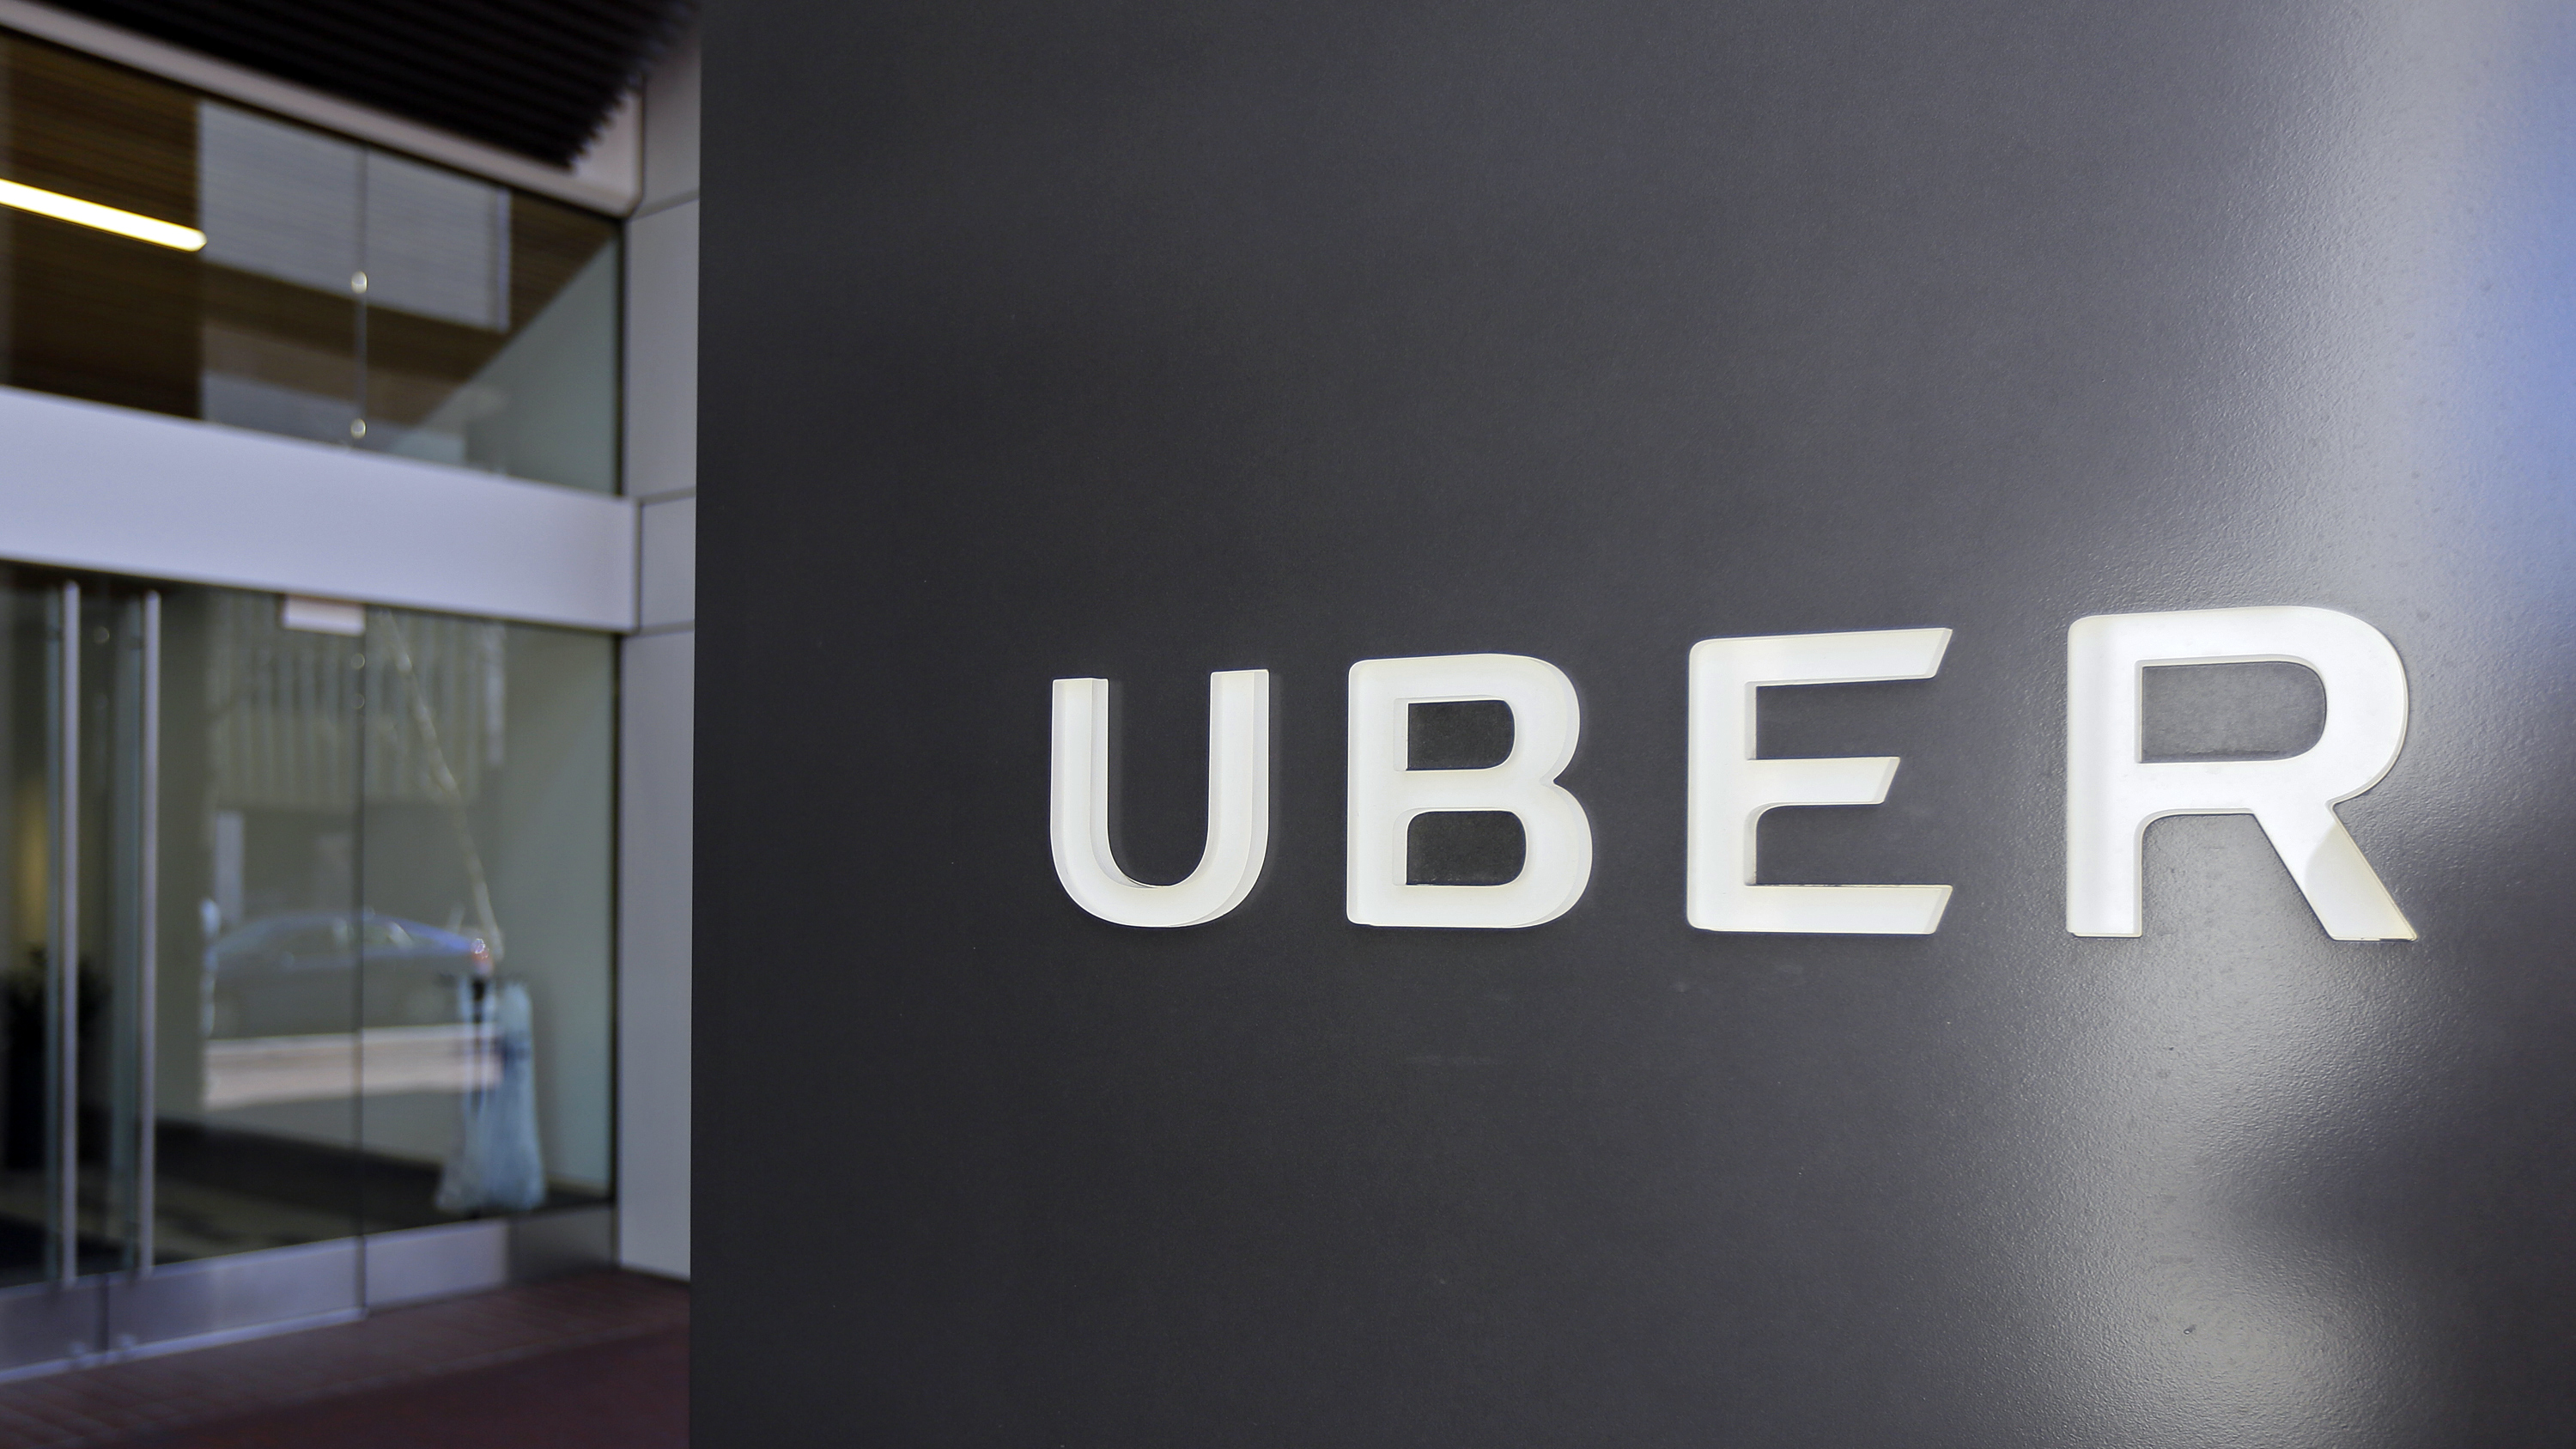 Uber board adopts all recommendations from Eric Holder investigation